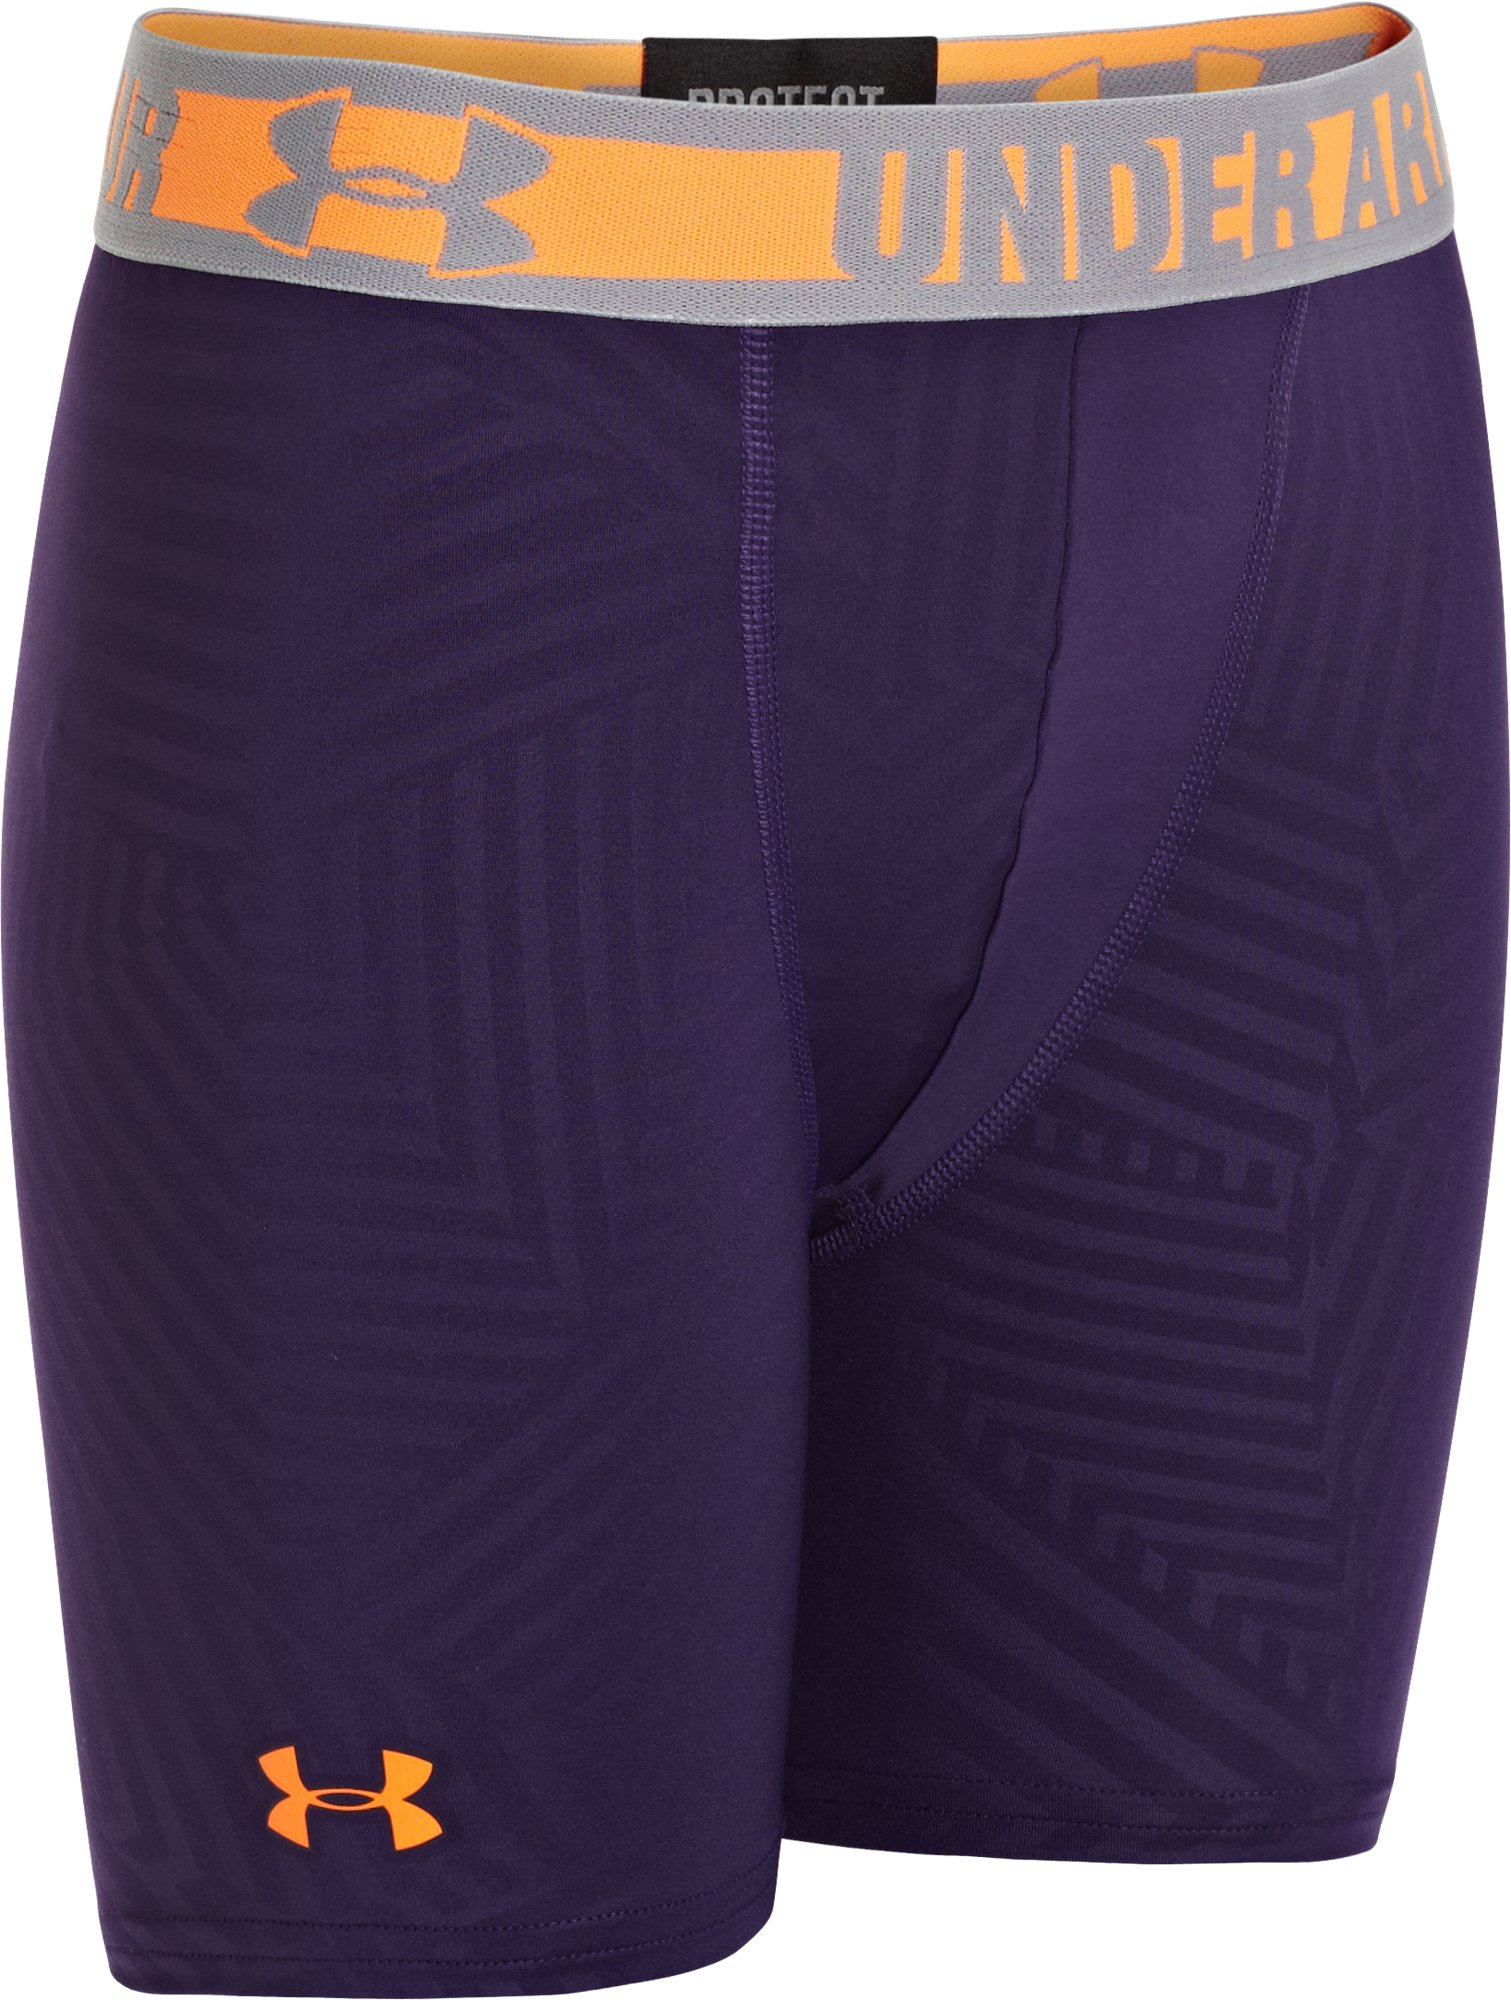 "Boys' HeatGear® Sonic 4"" Fitted Shorts, Purple, zoomed image"